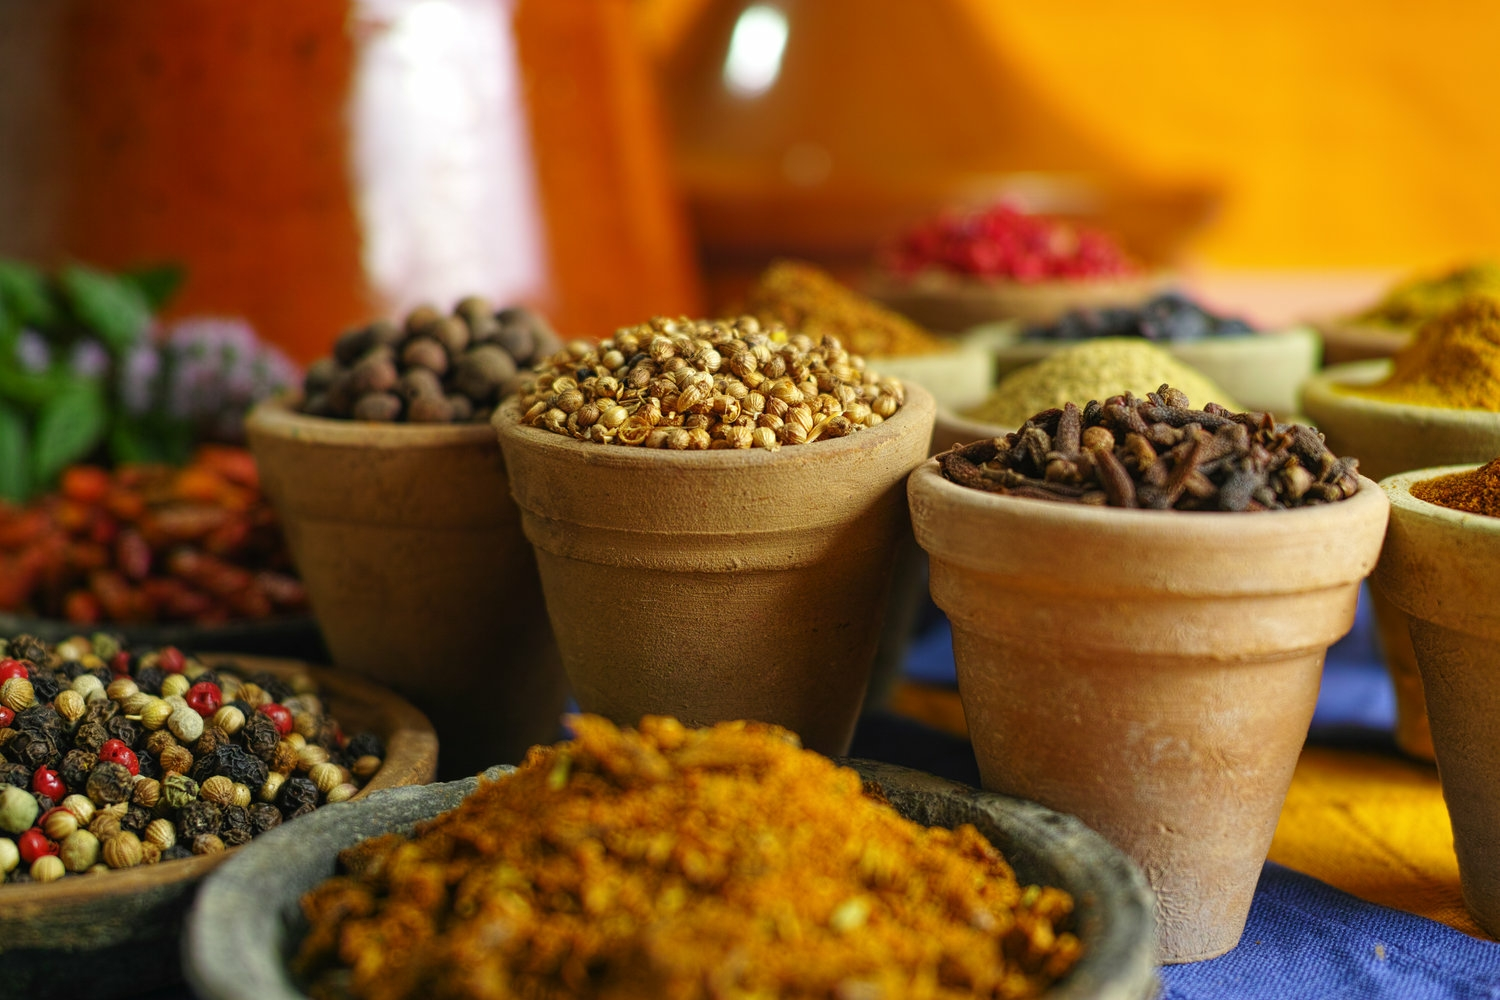 7 Ayurvedic herbs and spices with health benefits